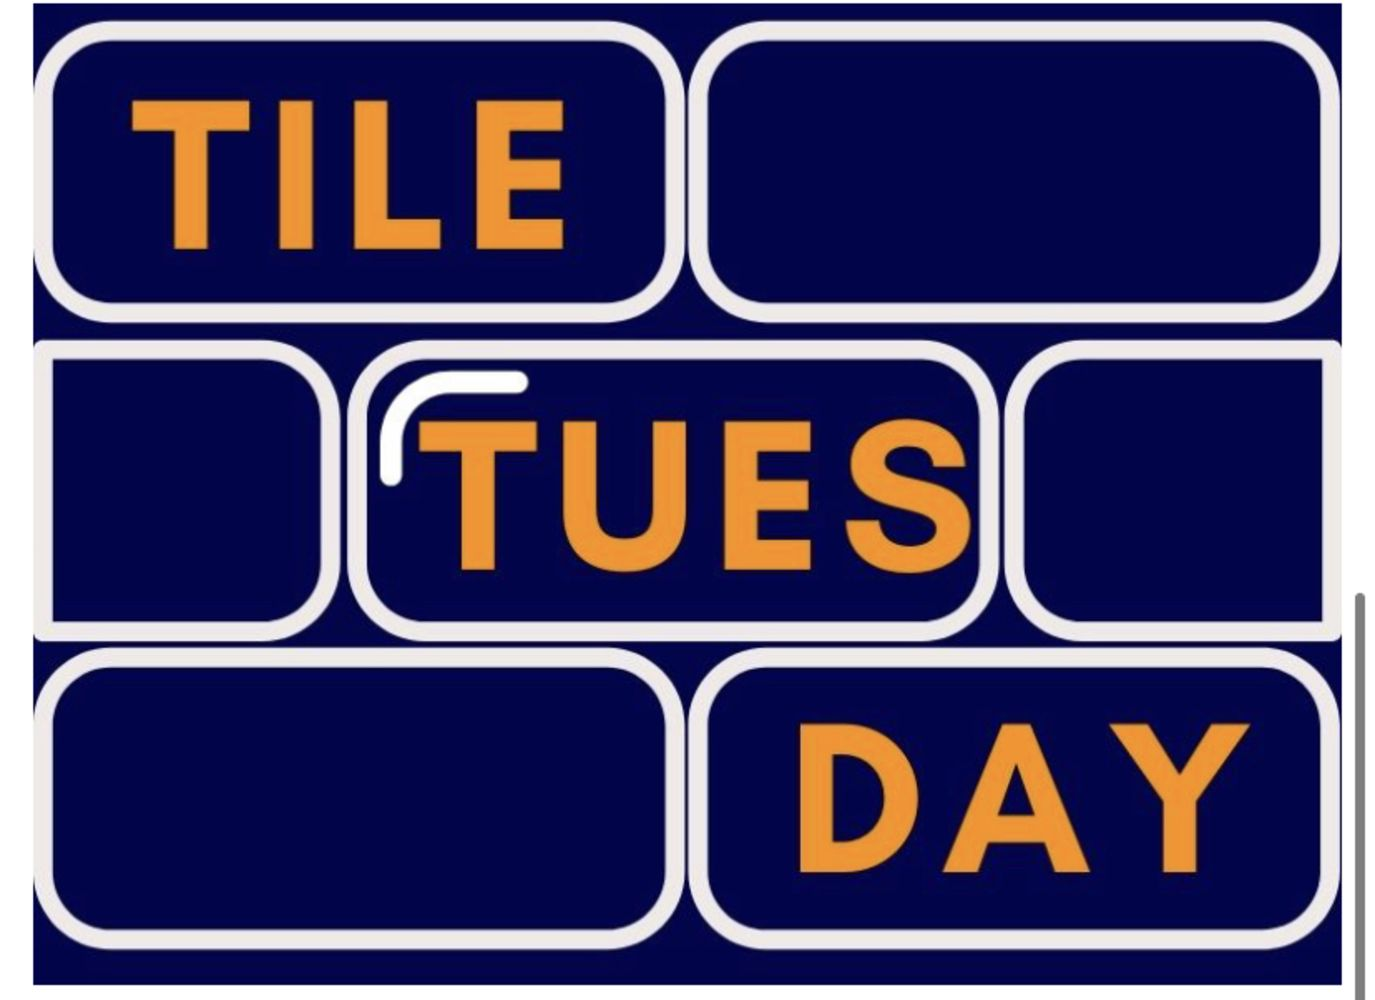 """No Reserve - Tile Tuesday - """"over £80k worth of tiles – Sourced from Johnsons Tiles"""" - 11th May 2021"""